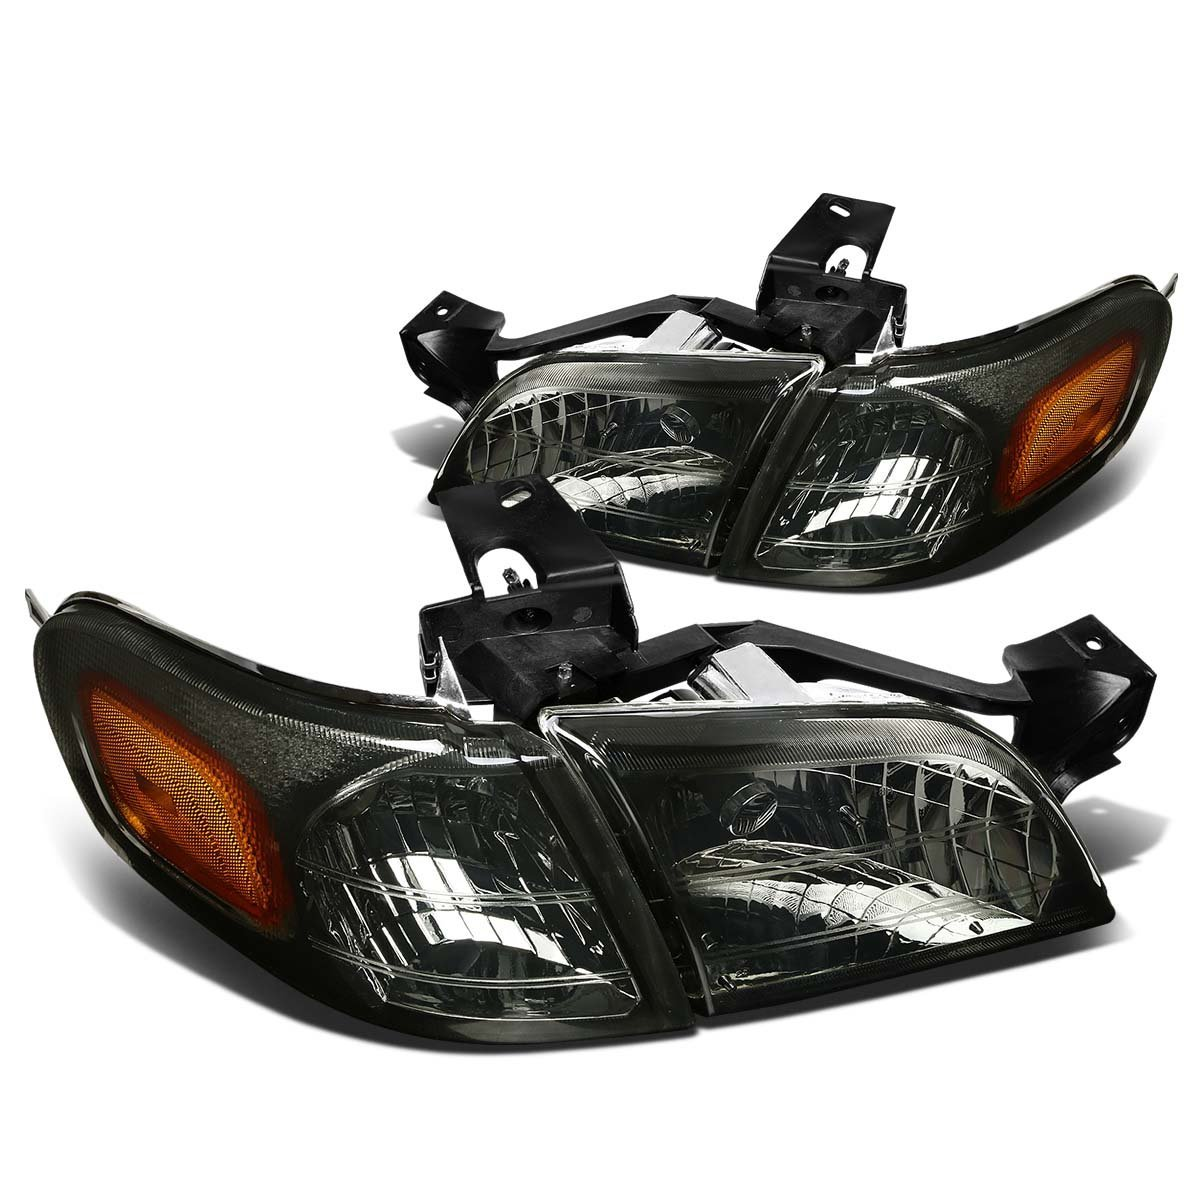 Chevy Venture Pontiac Montana Replacement Crystal Headlights Smoked Click To Enlarge